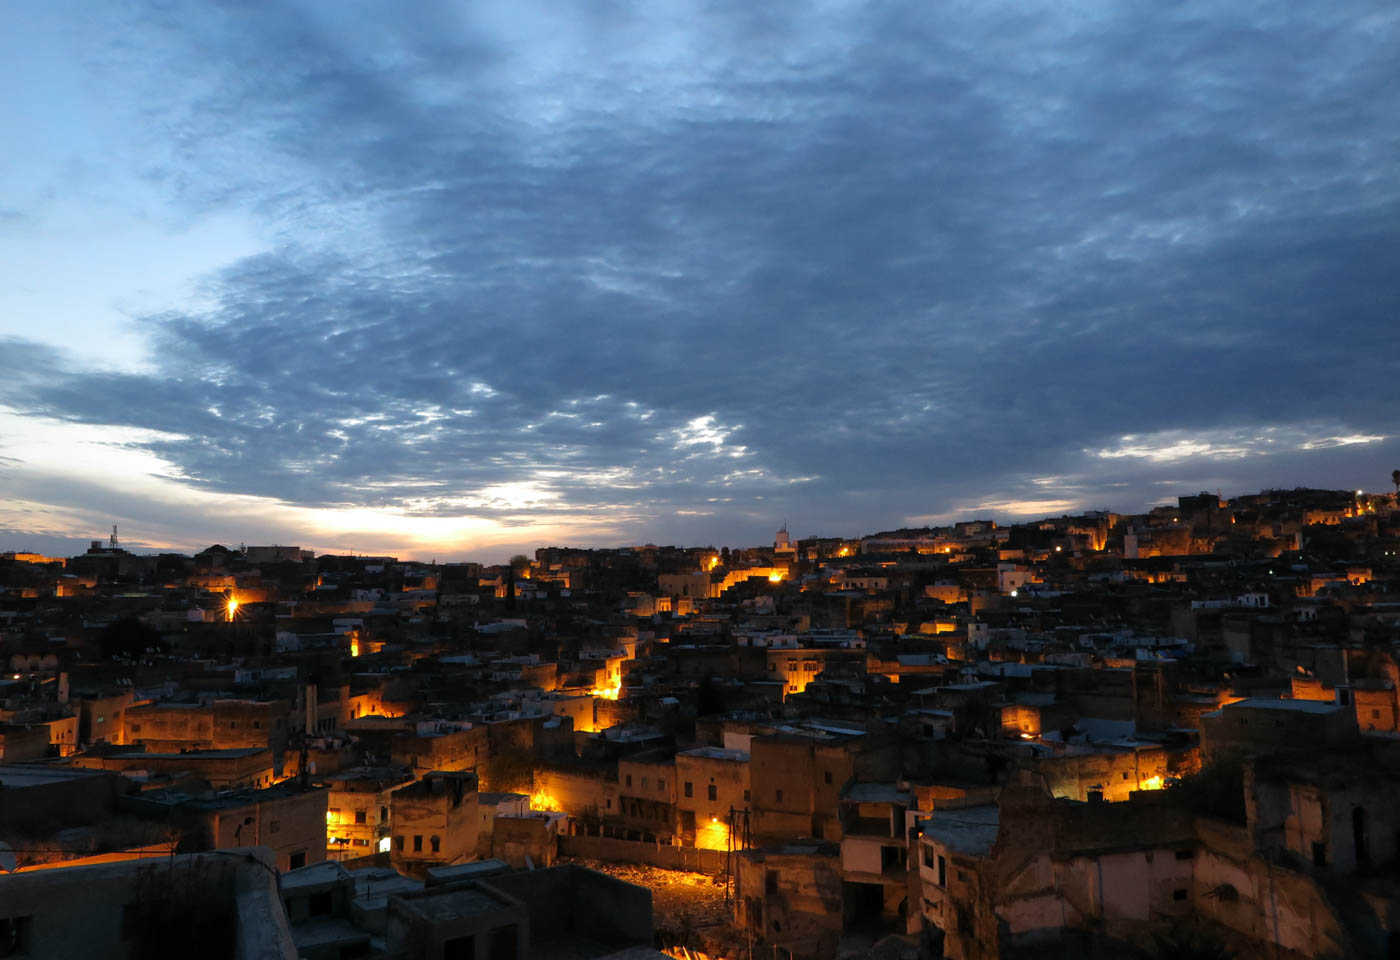 Town at sunset, taken with the Canon PowerShot G1X Mark II camera